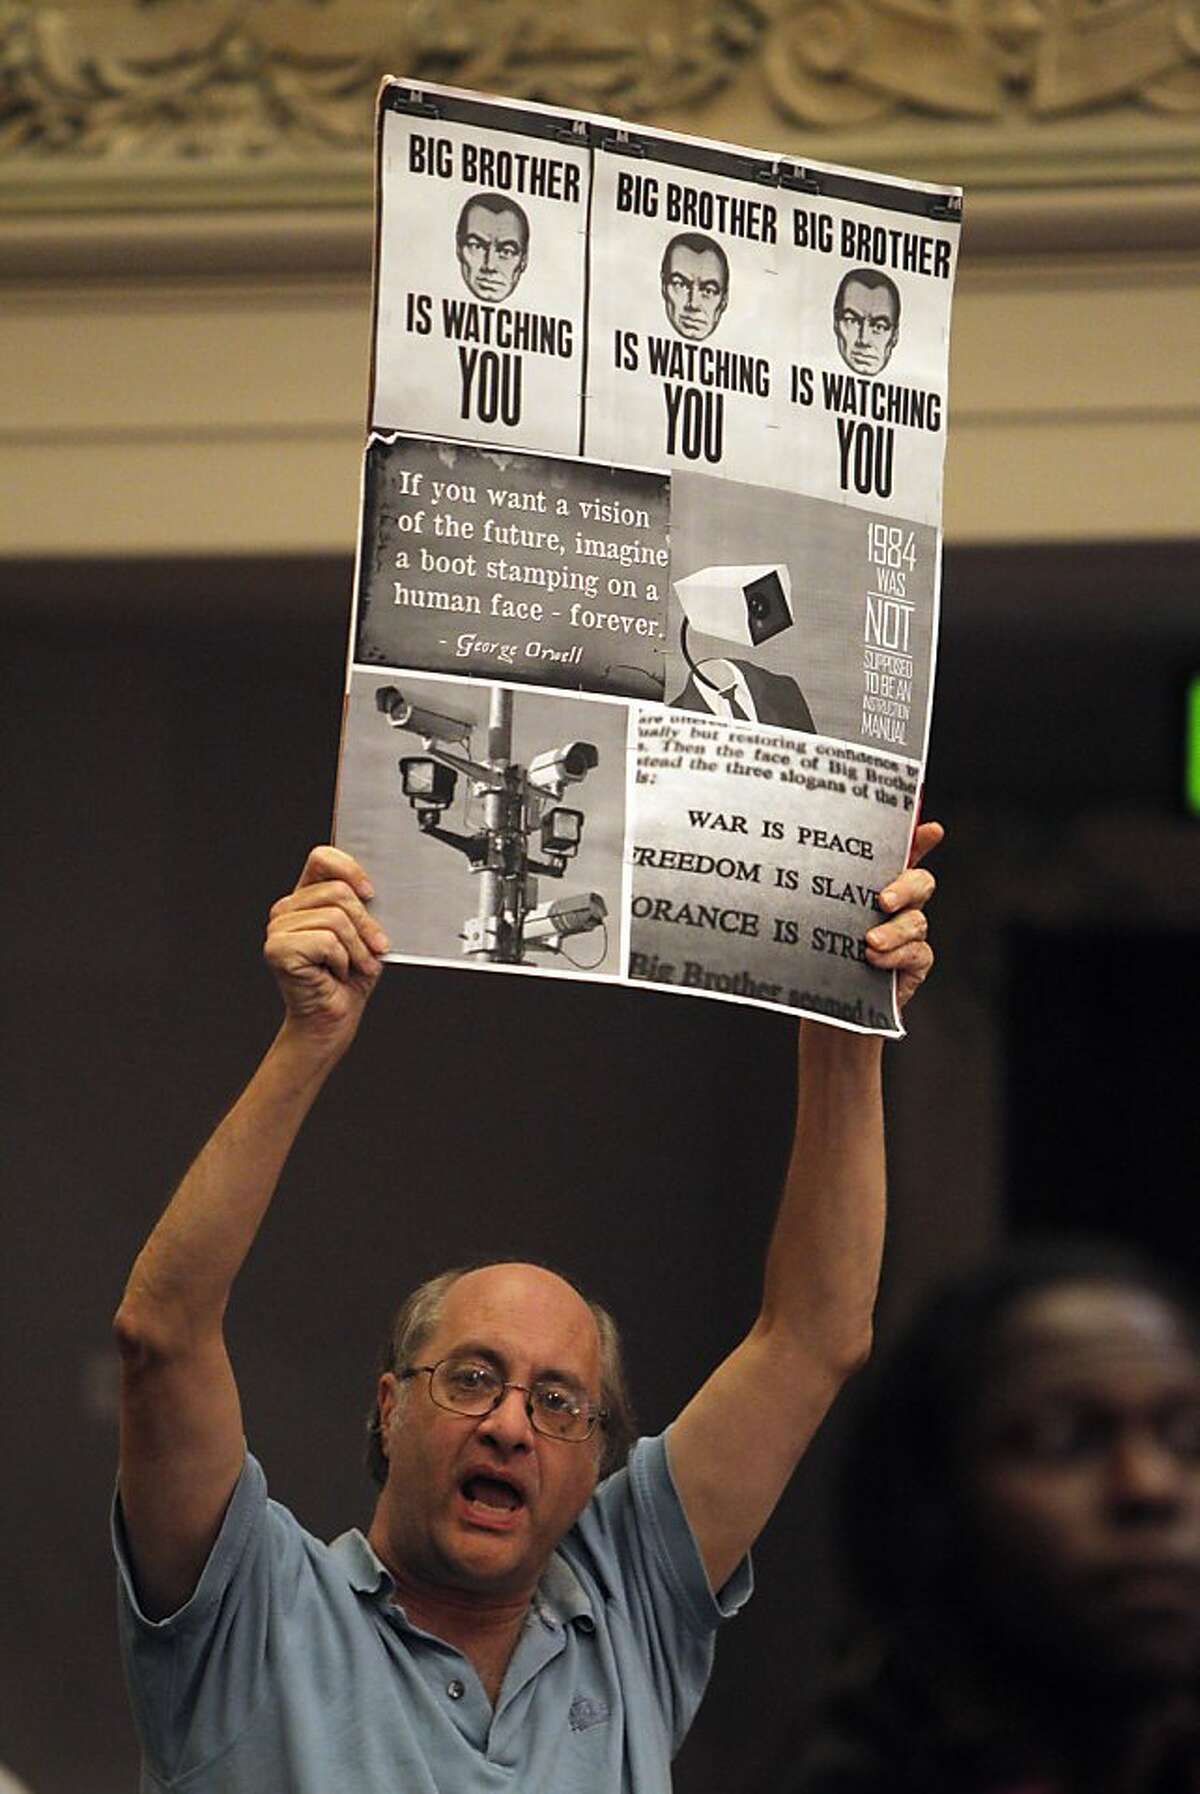 J.P. Massar holds a sign showing his opposition to the DAC as several Oakland residents opposed to the planned Domain Awareness Center in Oakland, Calif., interrupted the Oakland City Council meeting on Tuesday, November 19, 2013 to move the agenda item up earlier. The council planned Tuesday to move ahead with the DAC , which the city says it a federally funded center to help them better monitor crime and protests but critics call the